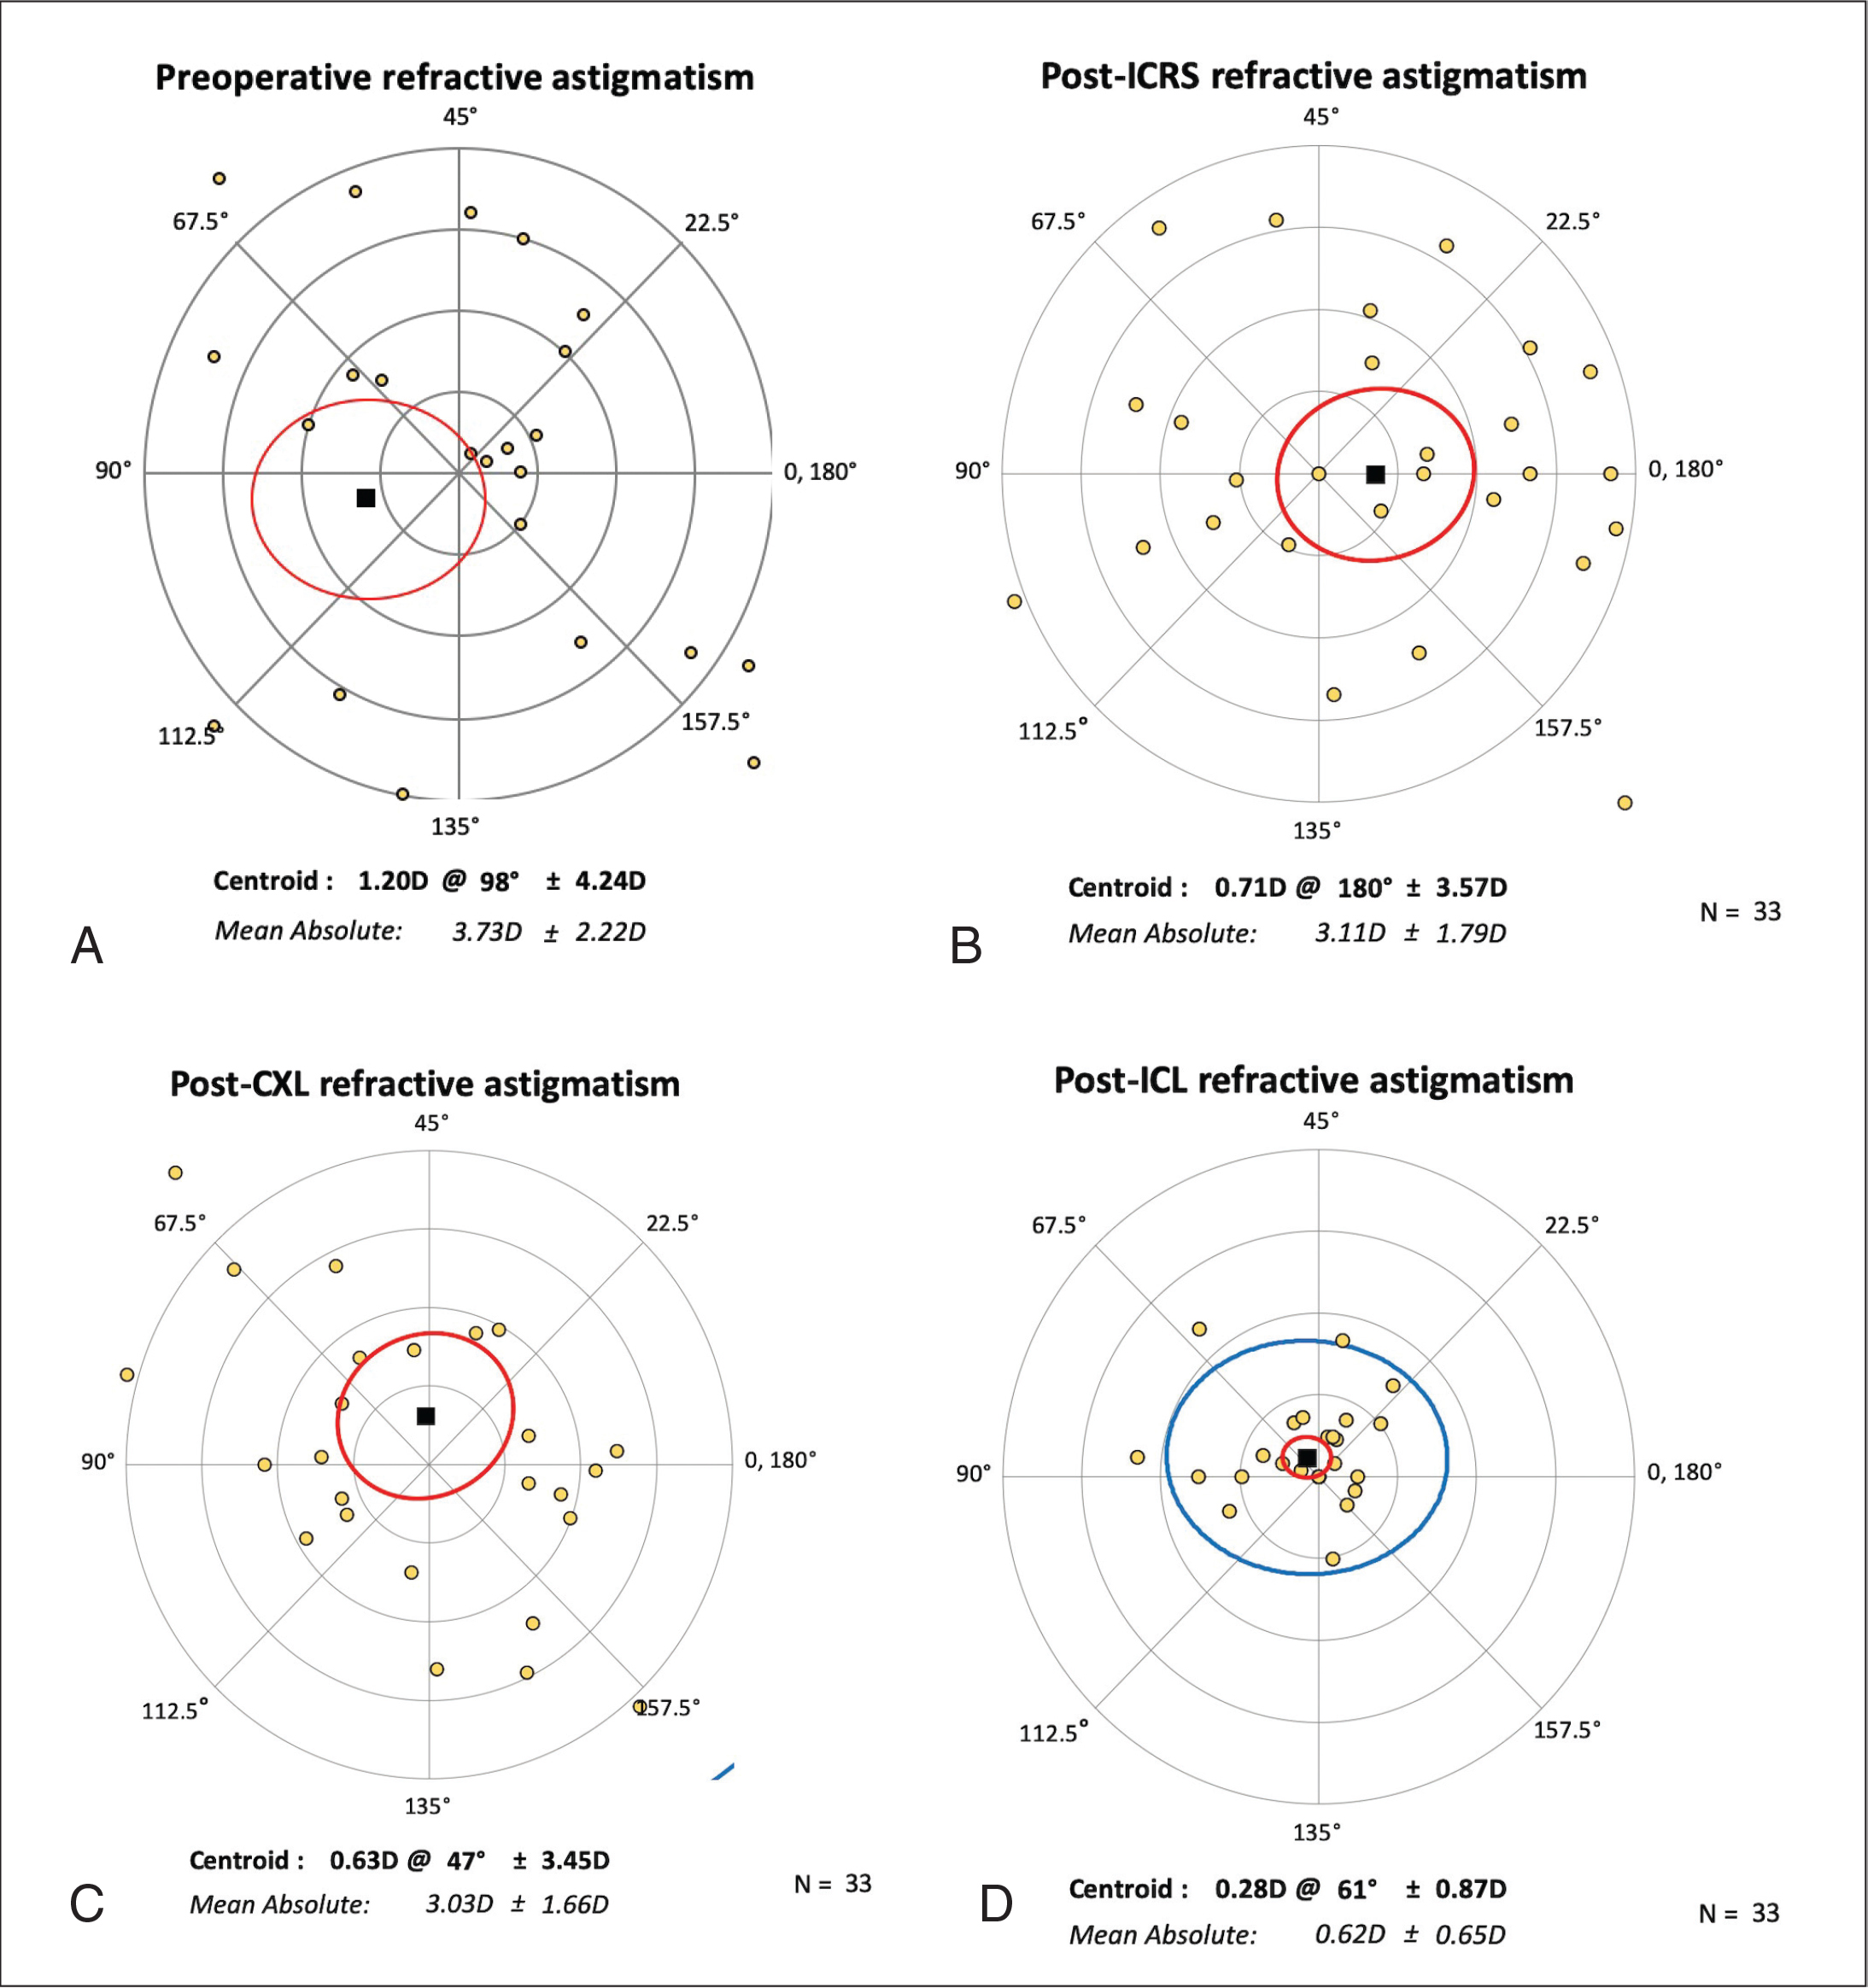 Double-angle plot of refractive astigmatism before and after three-step surgery for keratoconus: (A) preoperative values; (B) values after implantation of intracorneal ring segments (post-ICRS); (C) values after corneal cross-linking (post-CXL); and (D) values after implantation of intraocular contact lenses (post-ICL). D = diopters